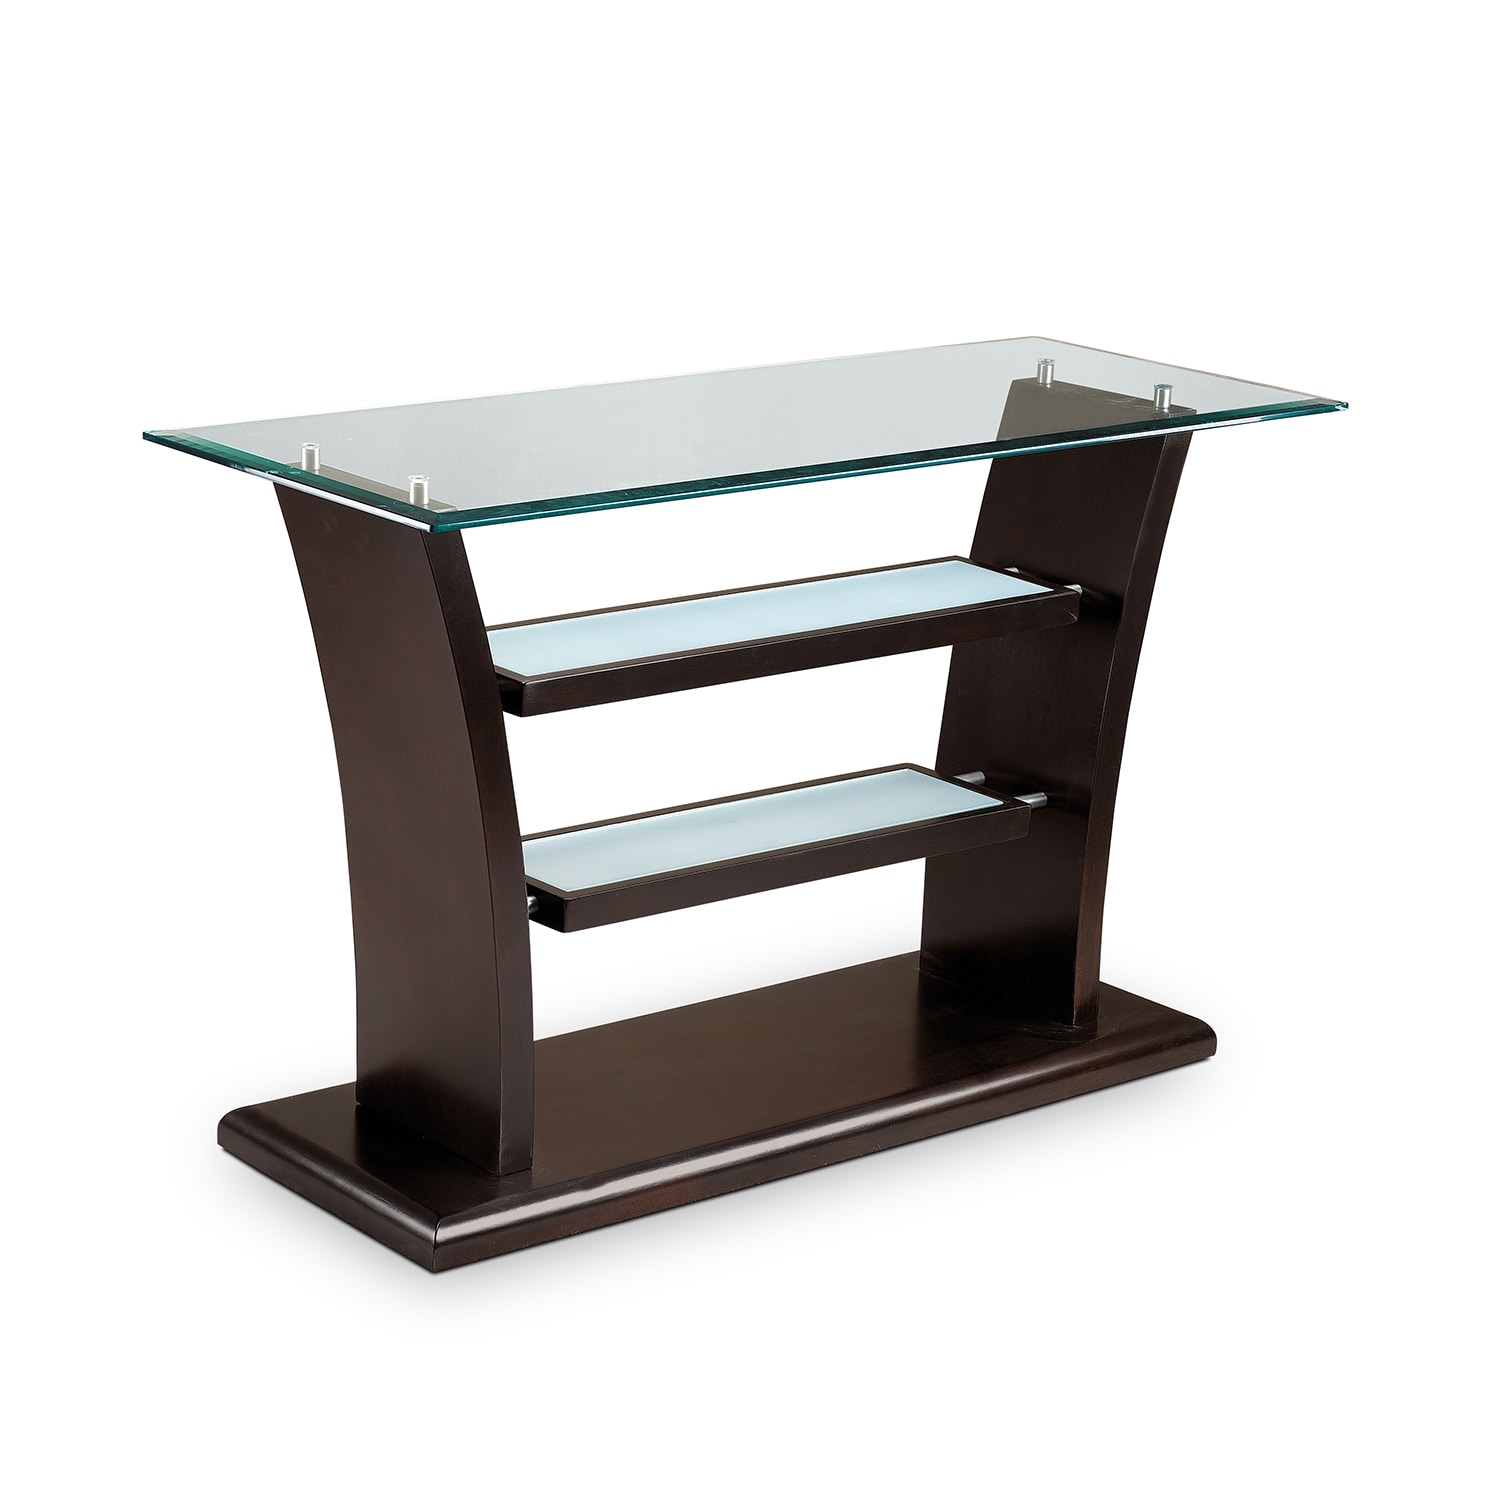 Bell Aer Sofa Table - Merlot